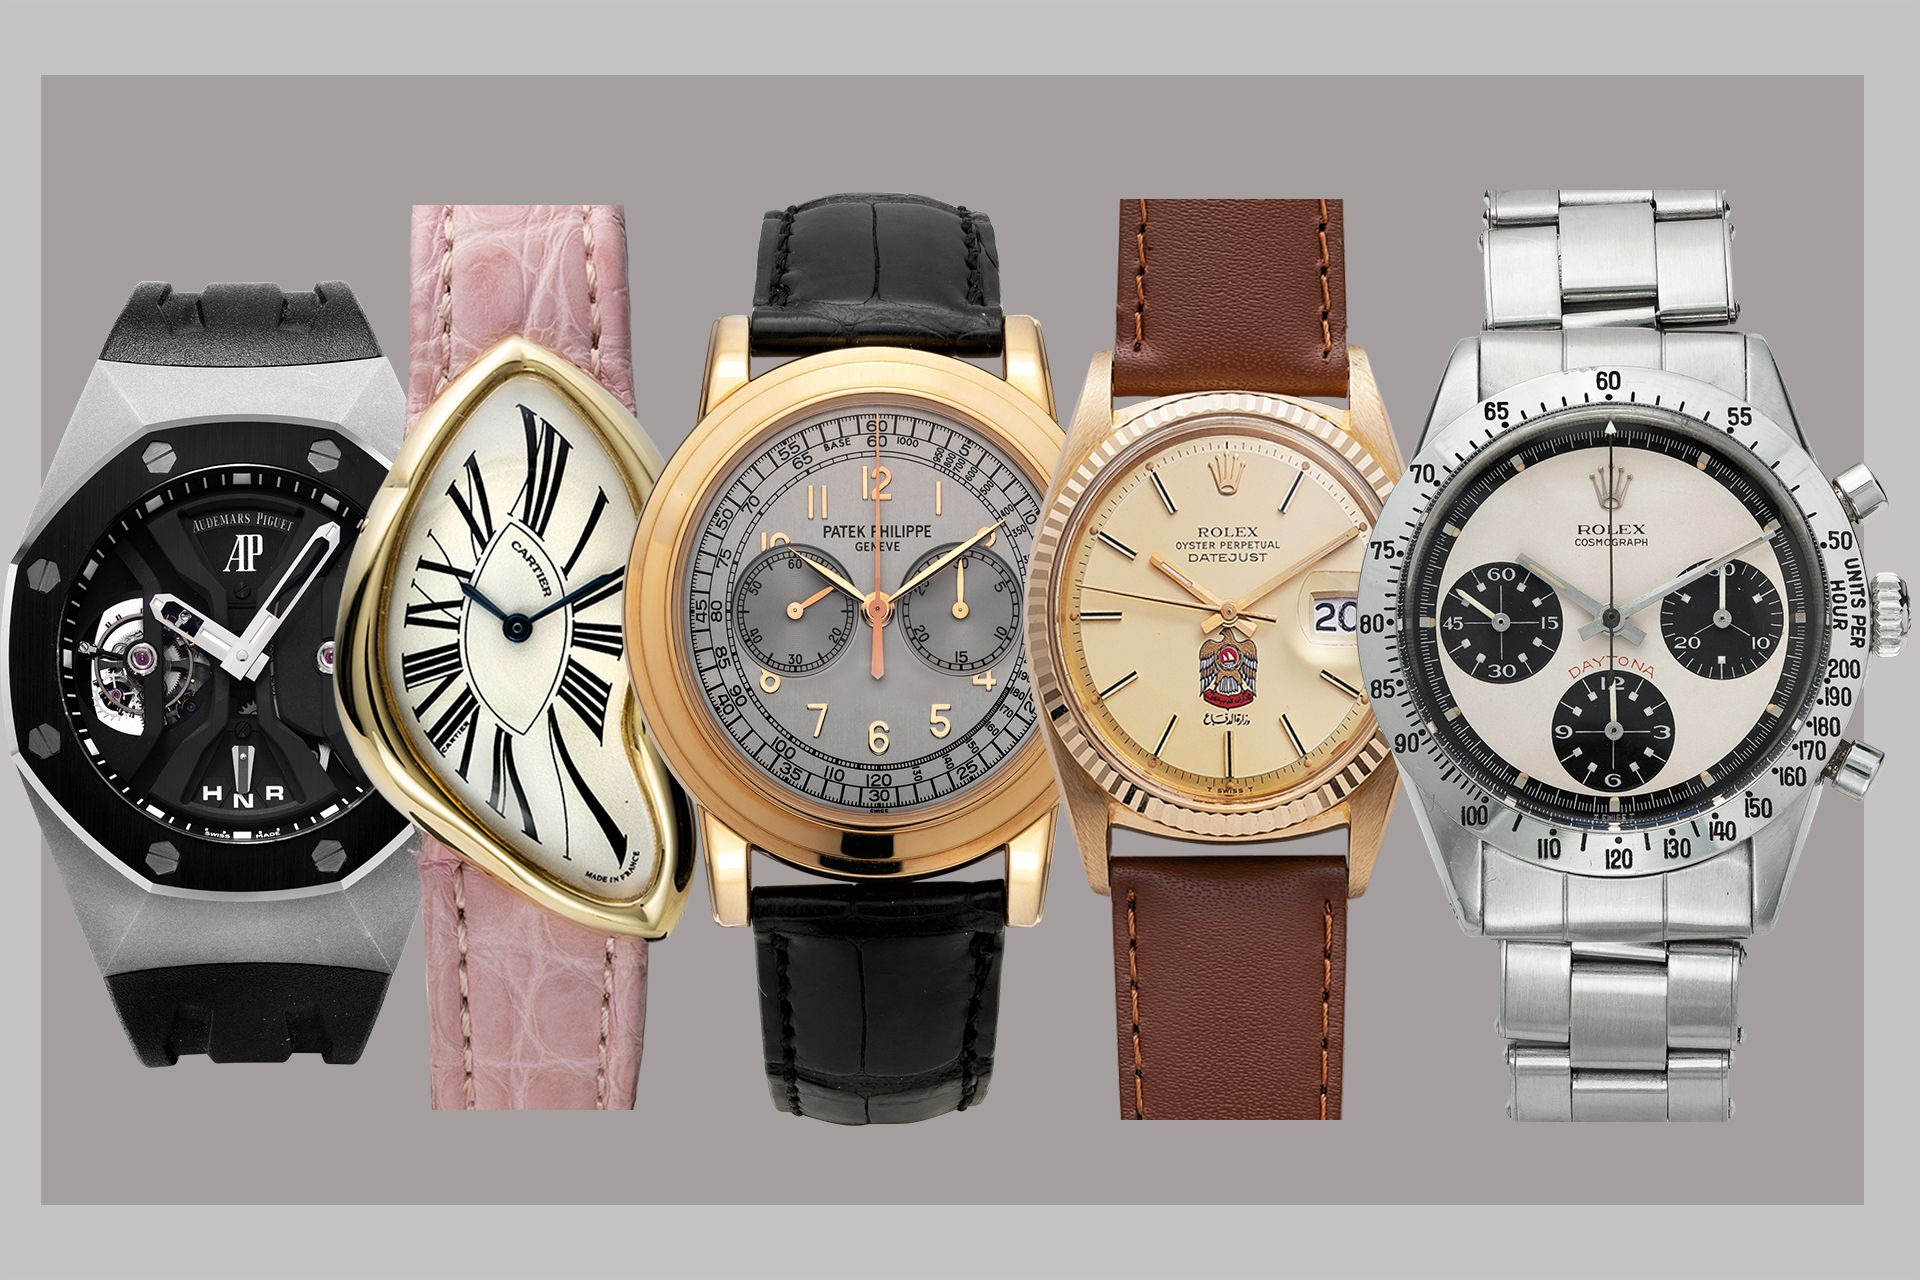 Find Out What Makes These Rare Timepieces So Covetable